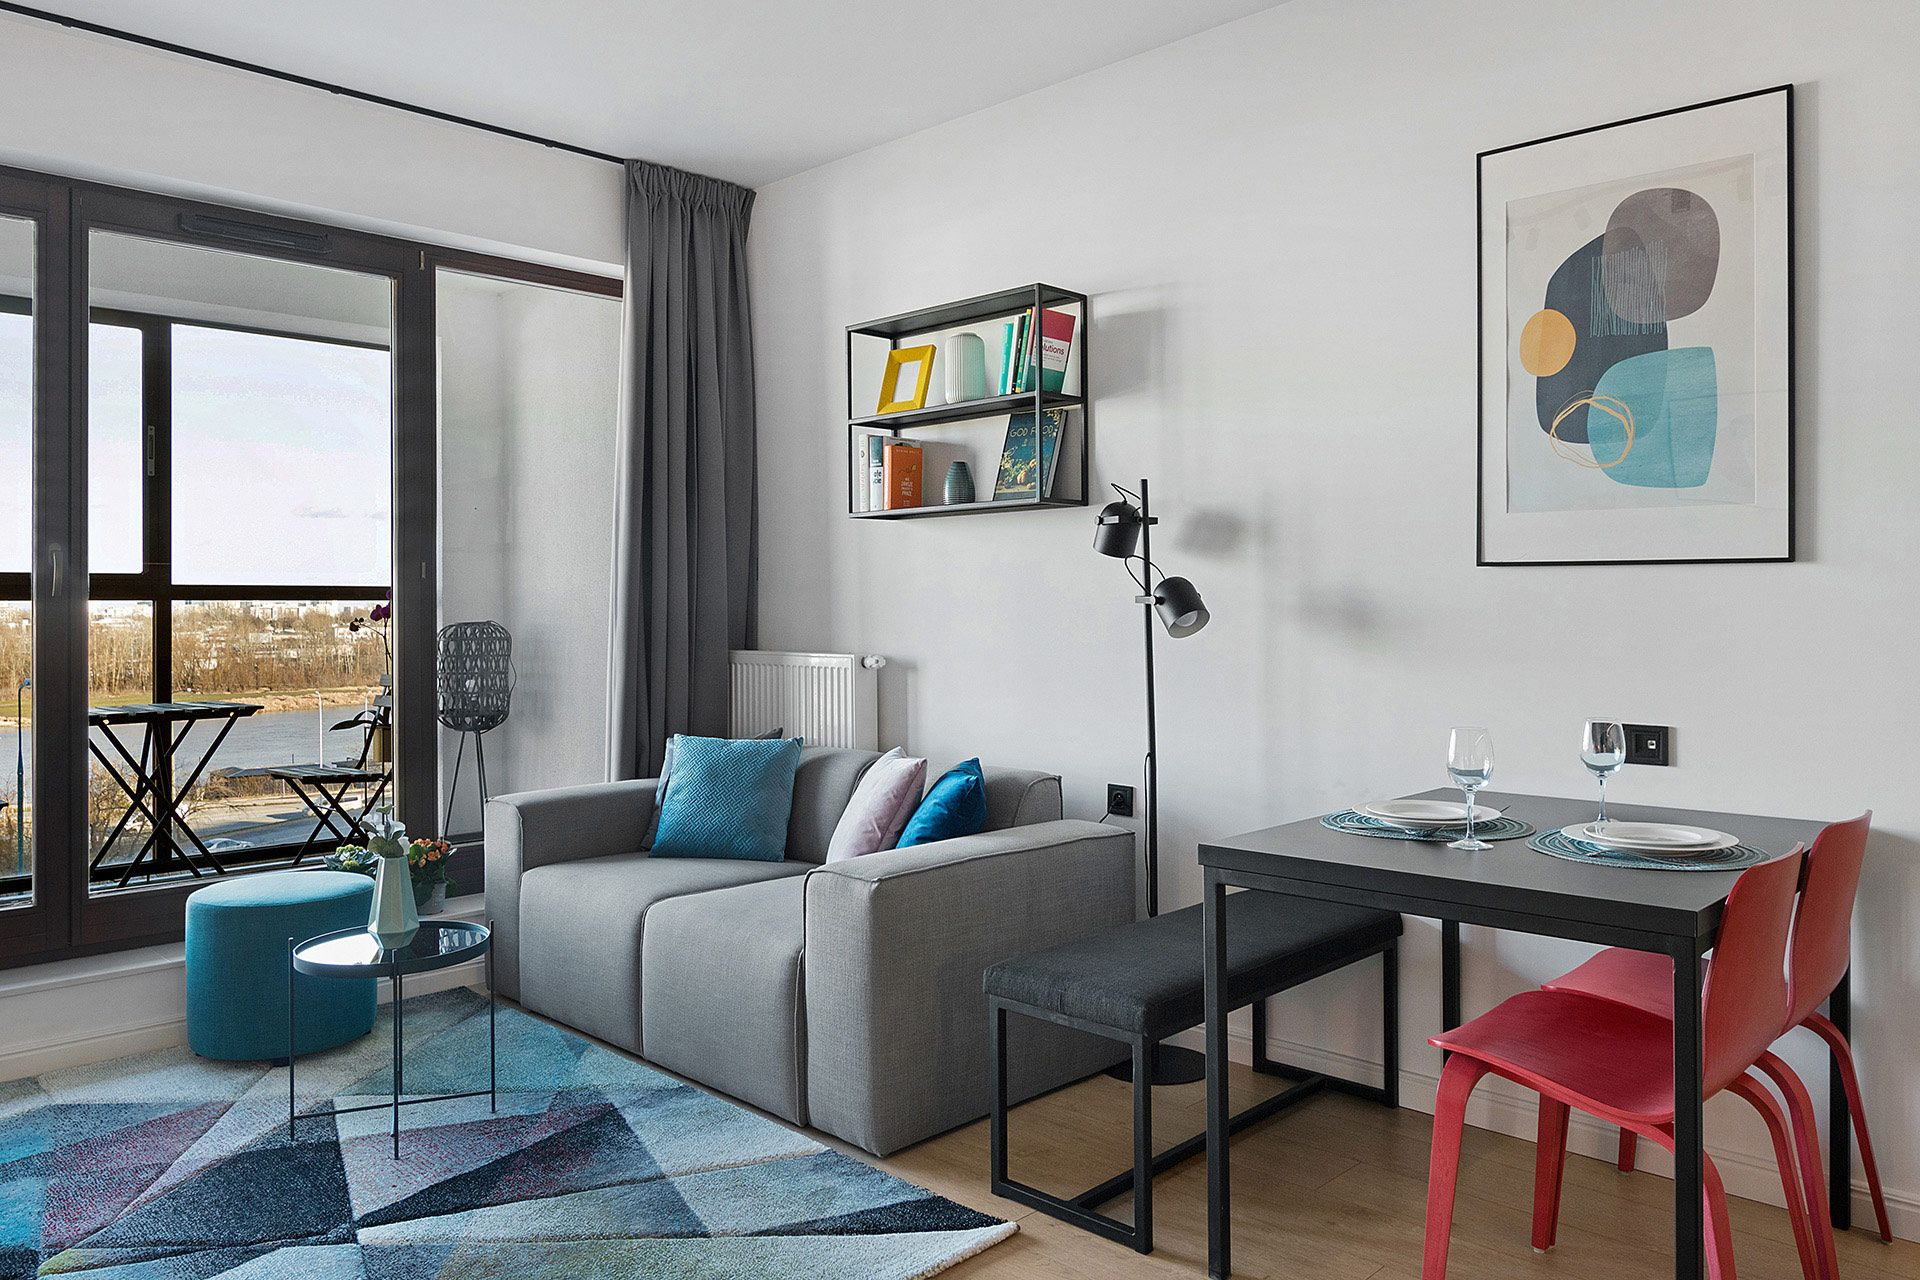 Studio - Large apartment to rent in Warsaw UPR-A-022-3